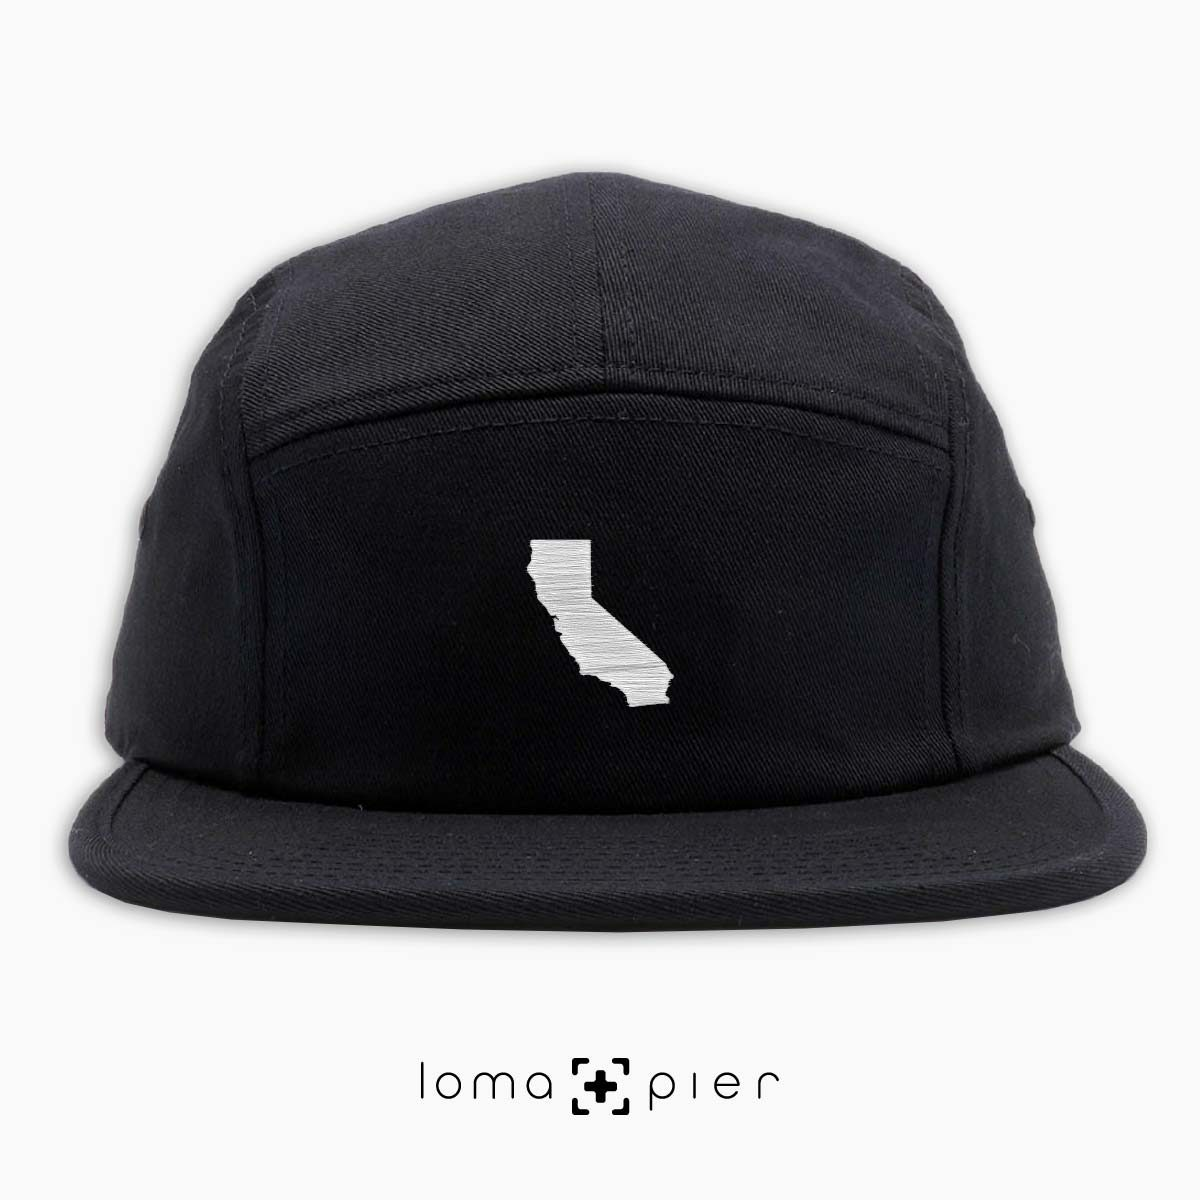 CALIFORNIA silhouette icon embroidered on a black cotton 5-panel hat by loma+pier hat store